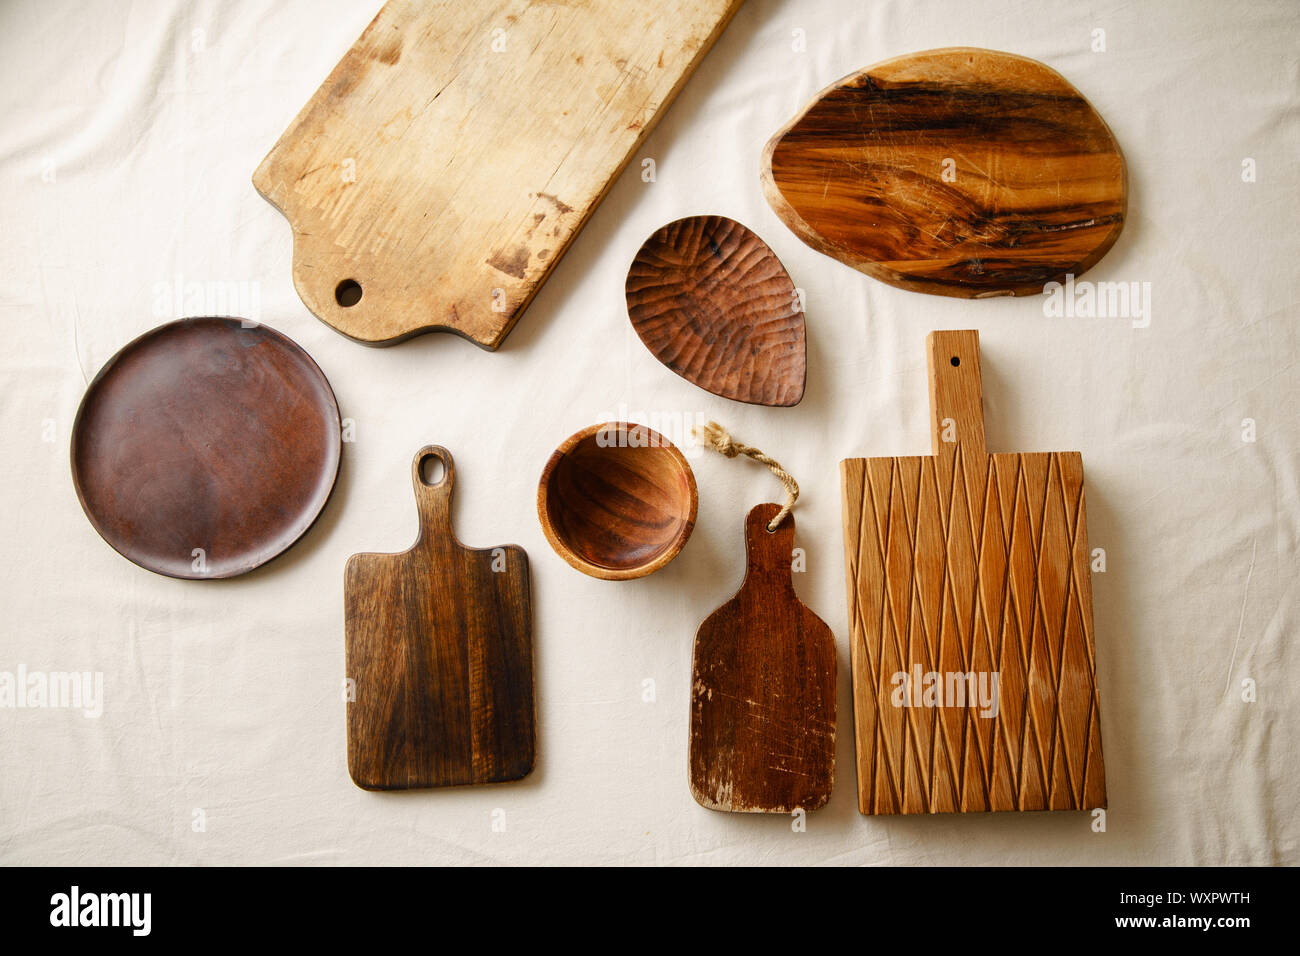 Various wooden tableware. Cutting boards, plate and bowl on linen tablecloth Stock Photo